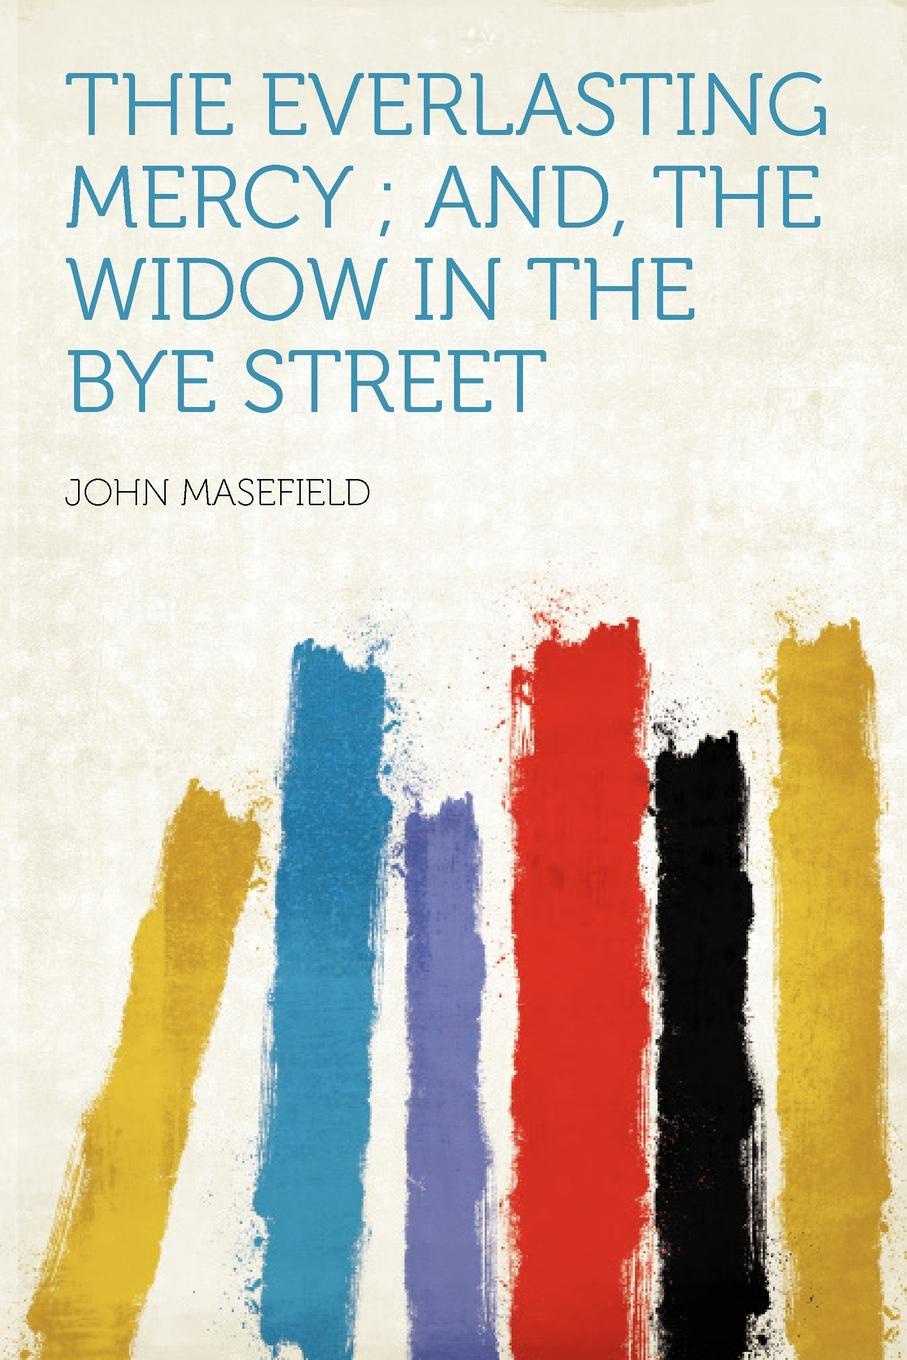 The Everlasting Mercy ; And, the Widow in the Bye Street.